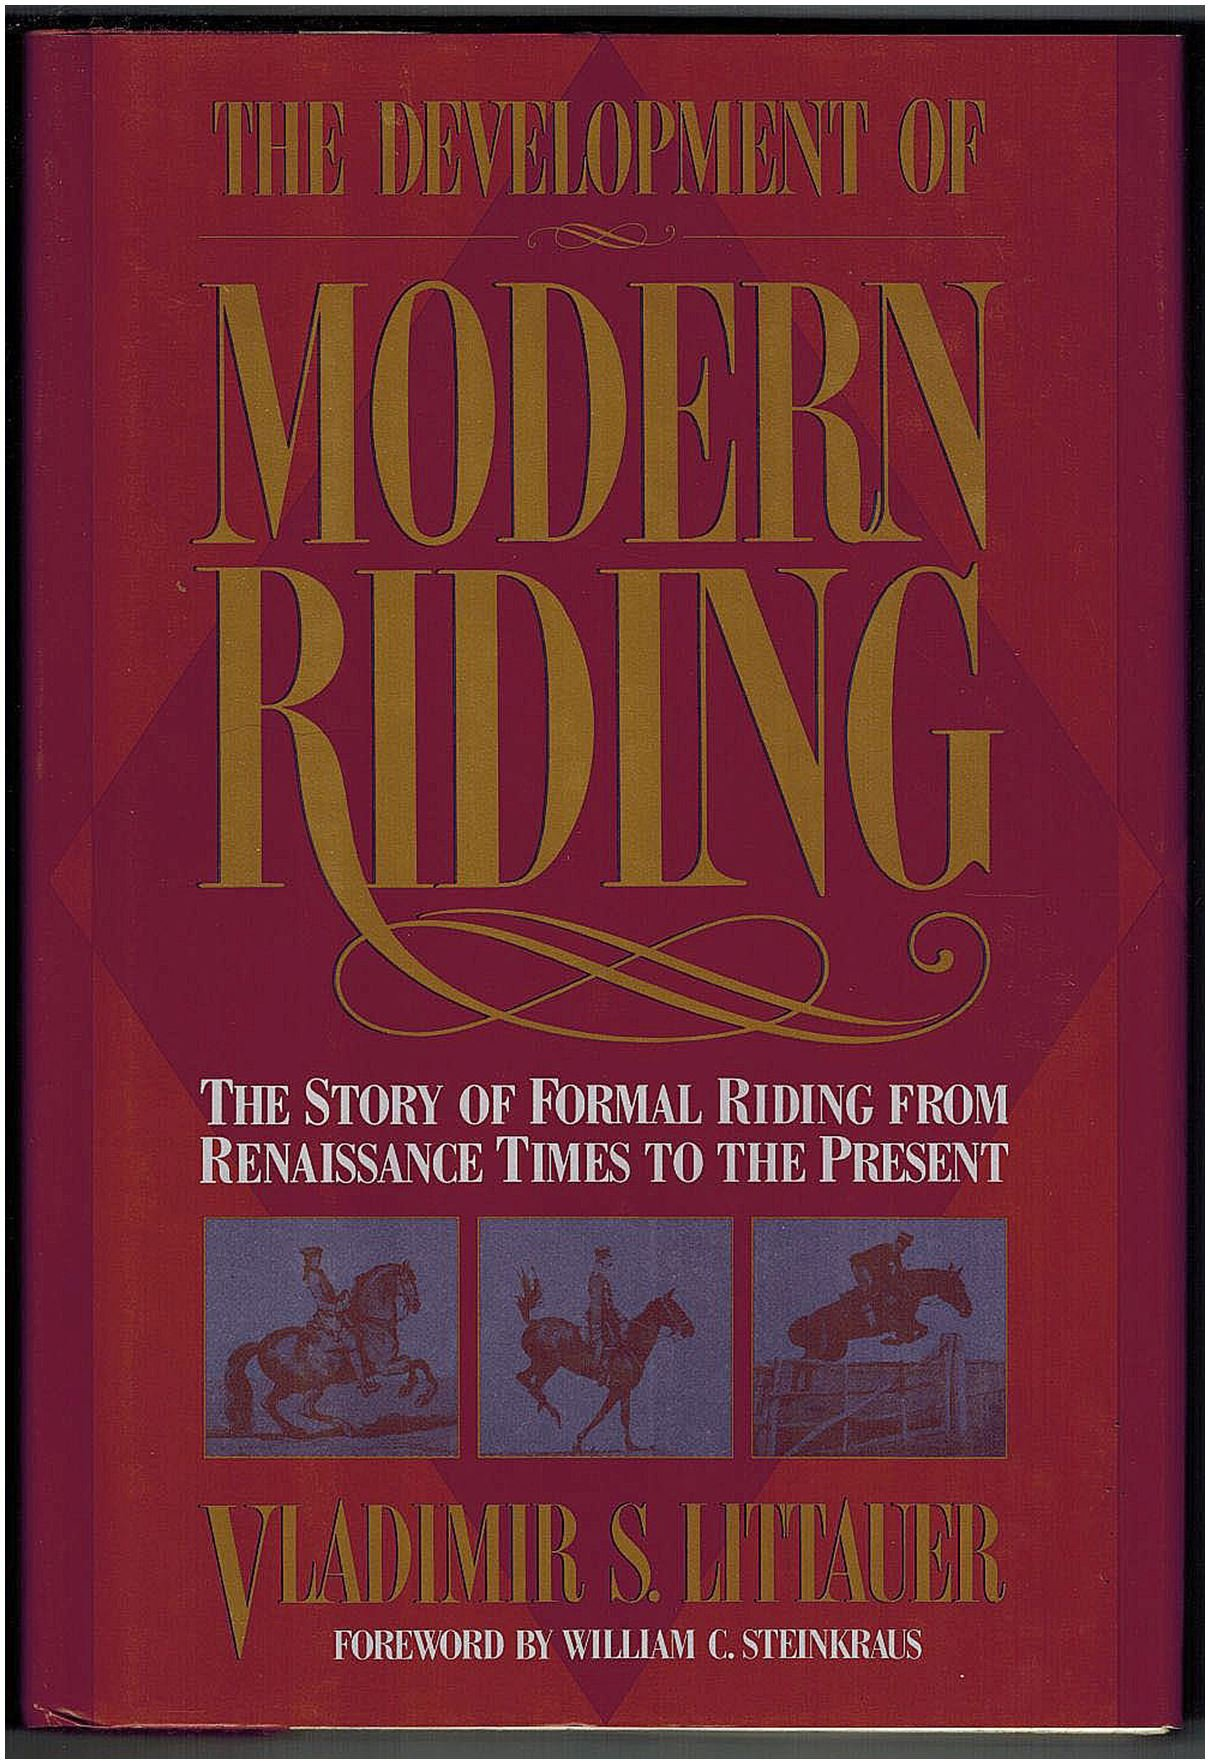 The Development of Modern Riding, Littauer, V S